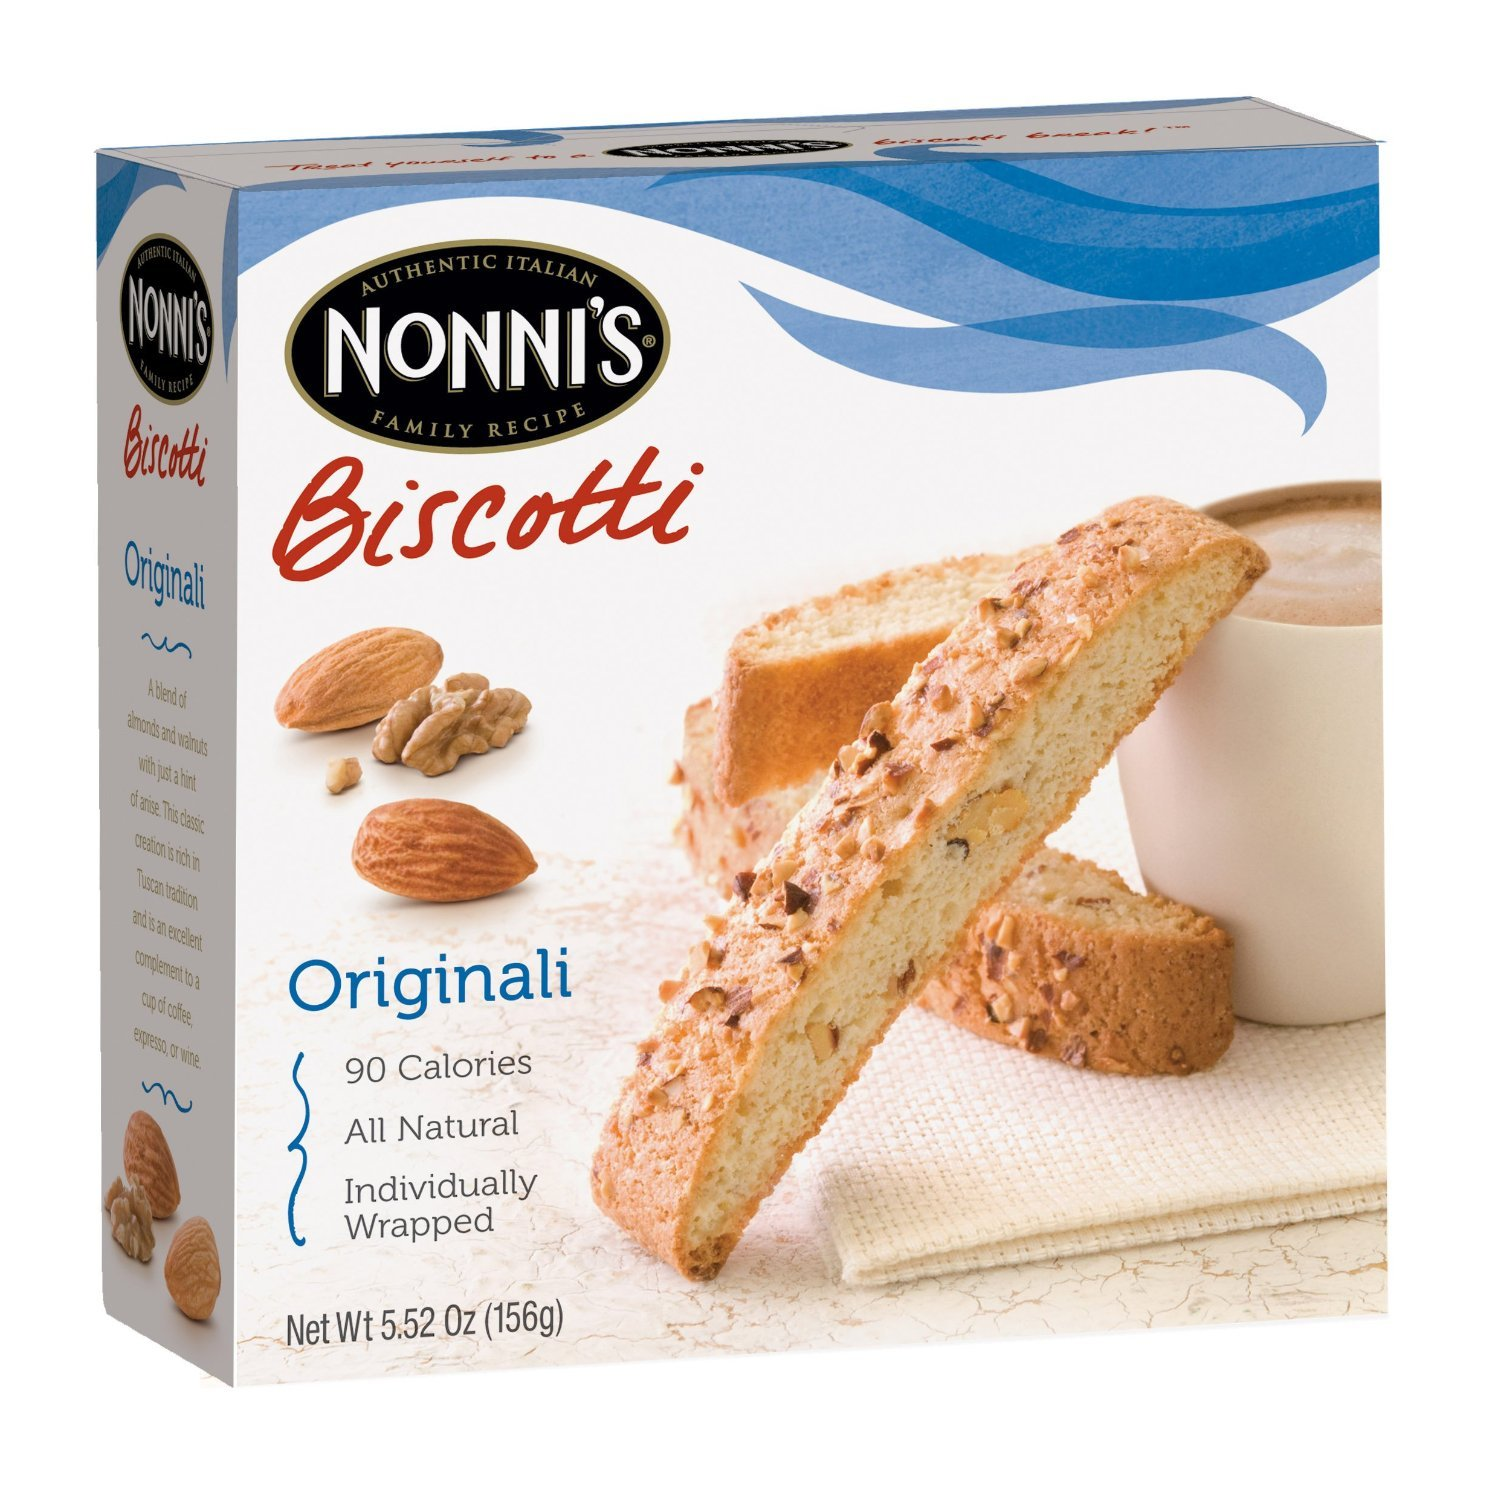 Nonni's Originali Biscotti, 8-count, (Pack Of 6)